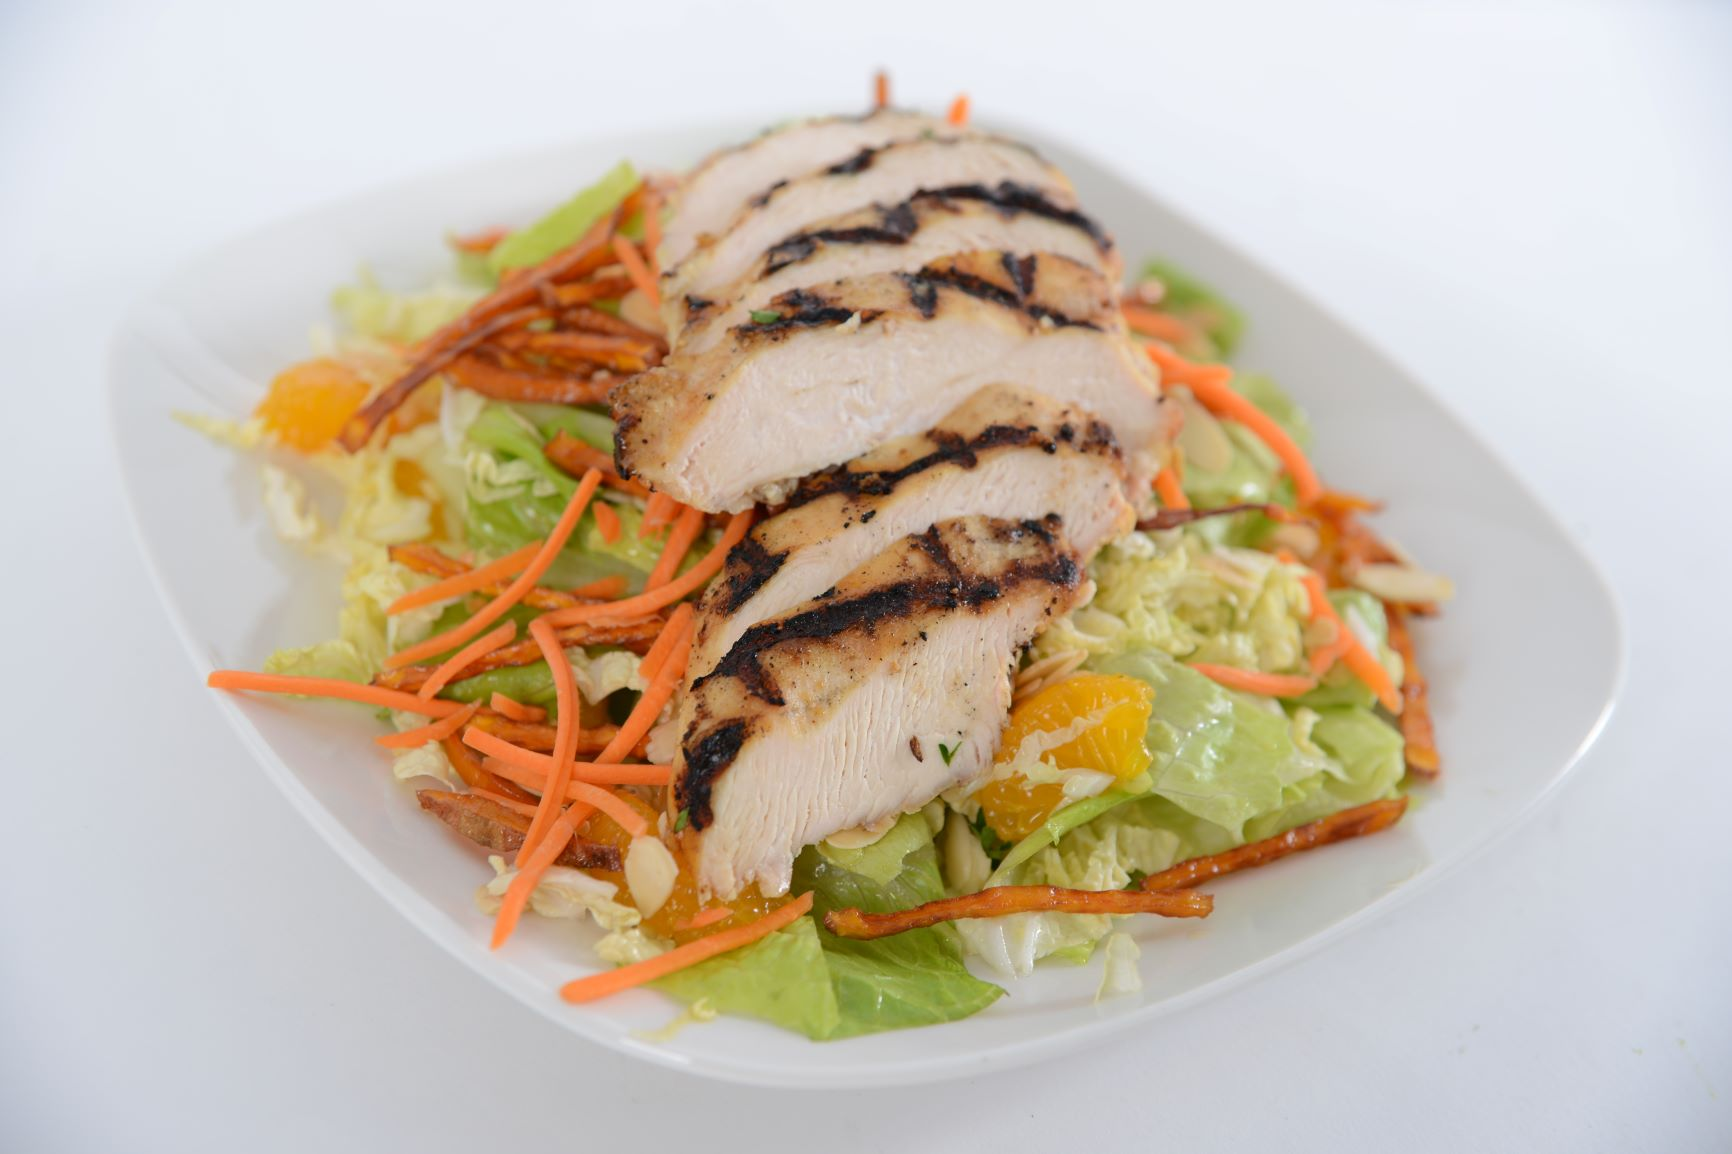 Mandarin Salad w/ Chicken Breast or Salmon (Thursday 4/9 delivery)